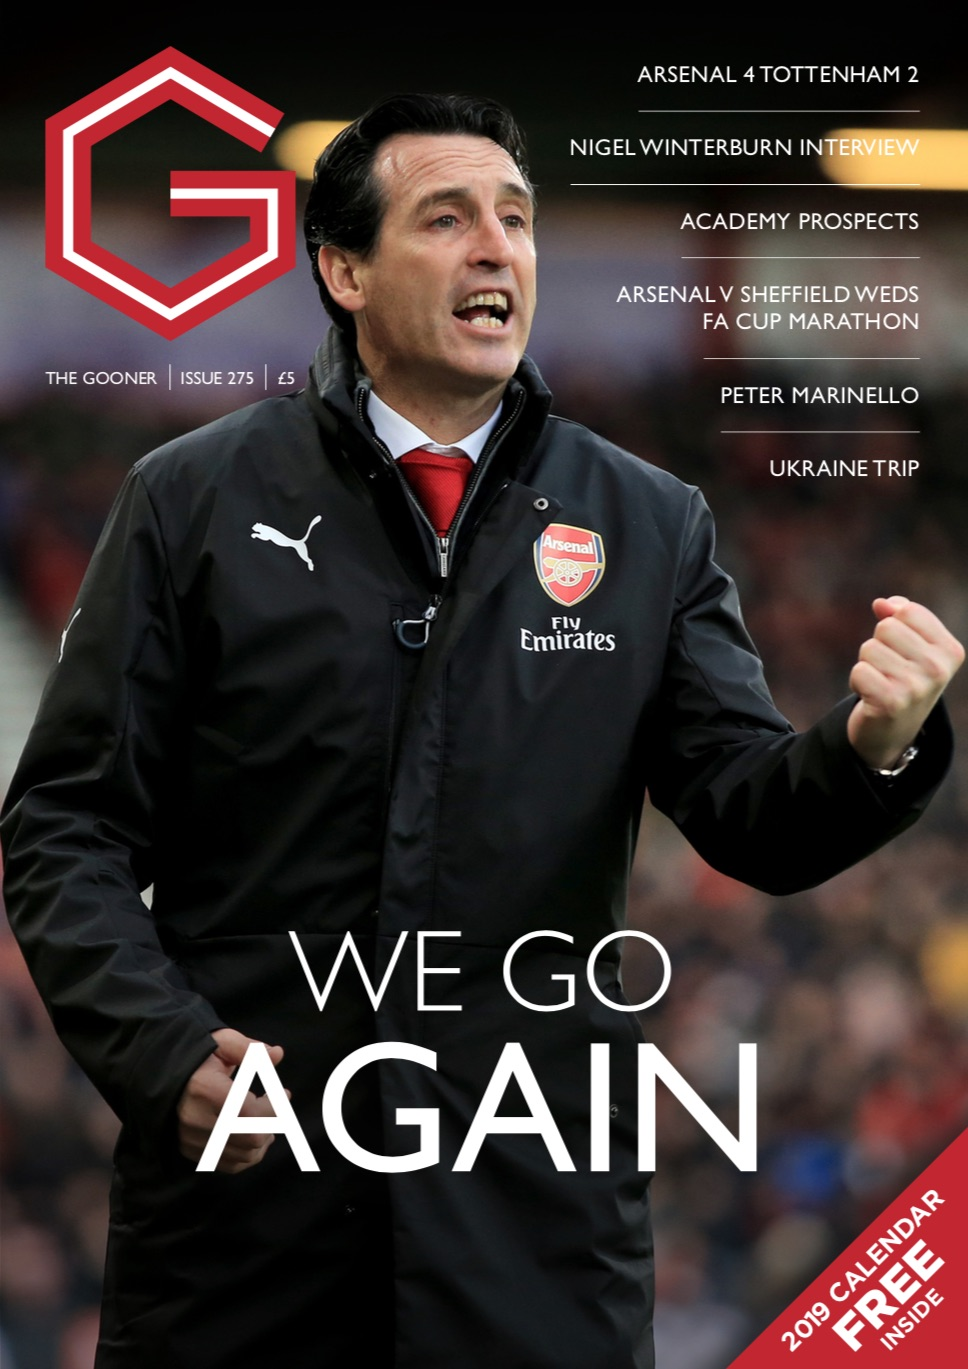 The Gooner Issue 275